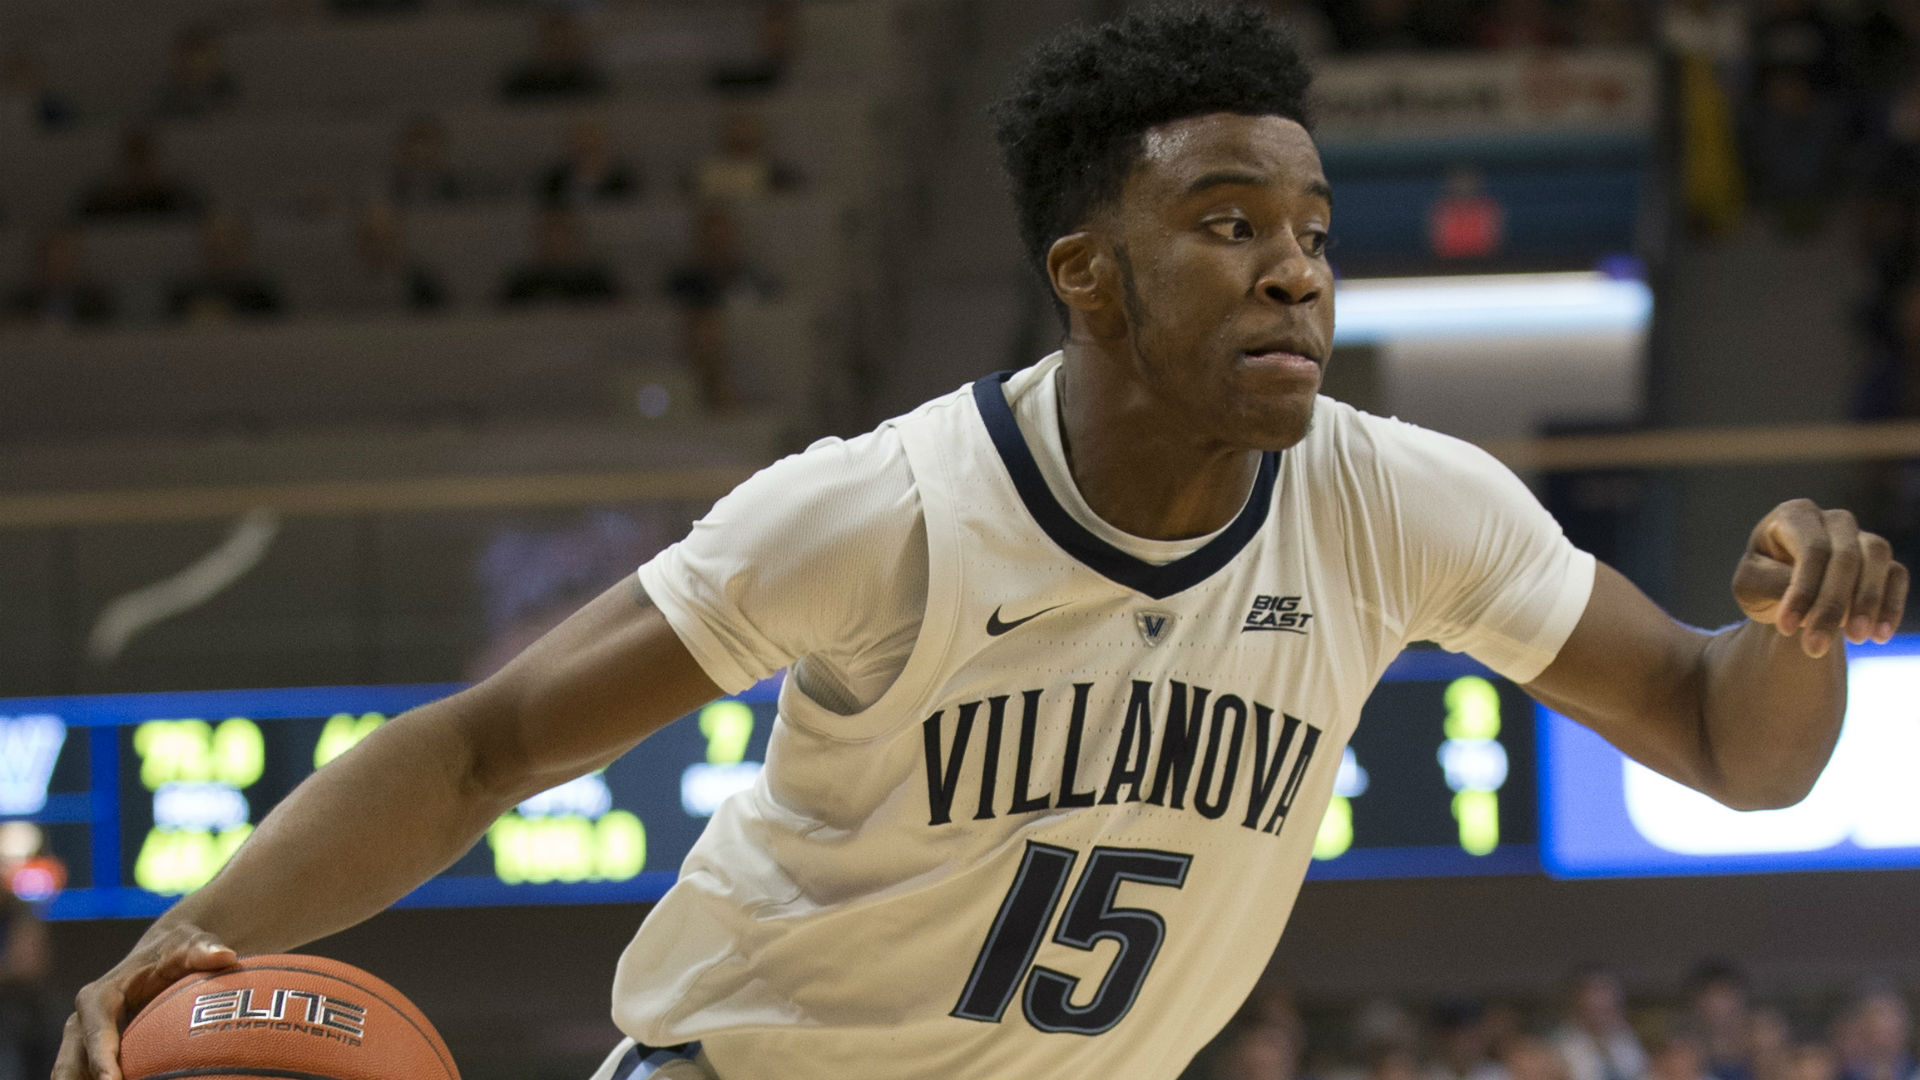 Photo of Villanova forward Saddiq Bey's commitment to stay in NBA Draft will make some GM look very smart